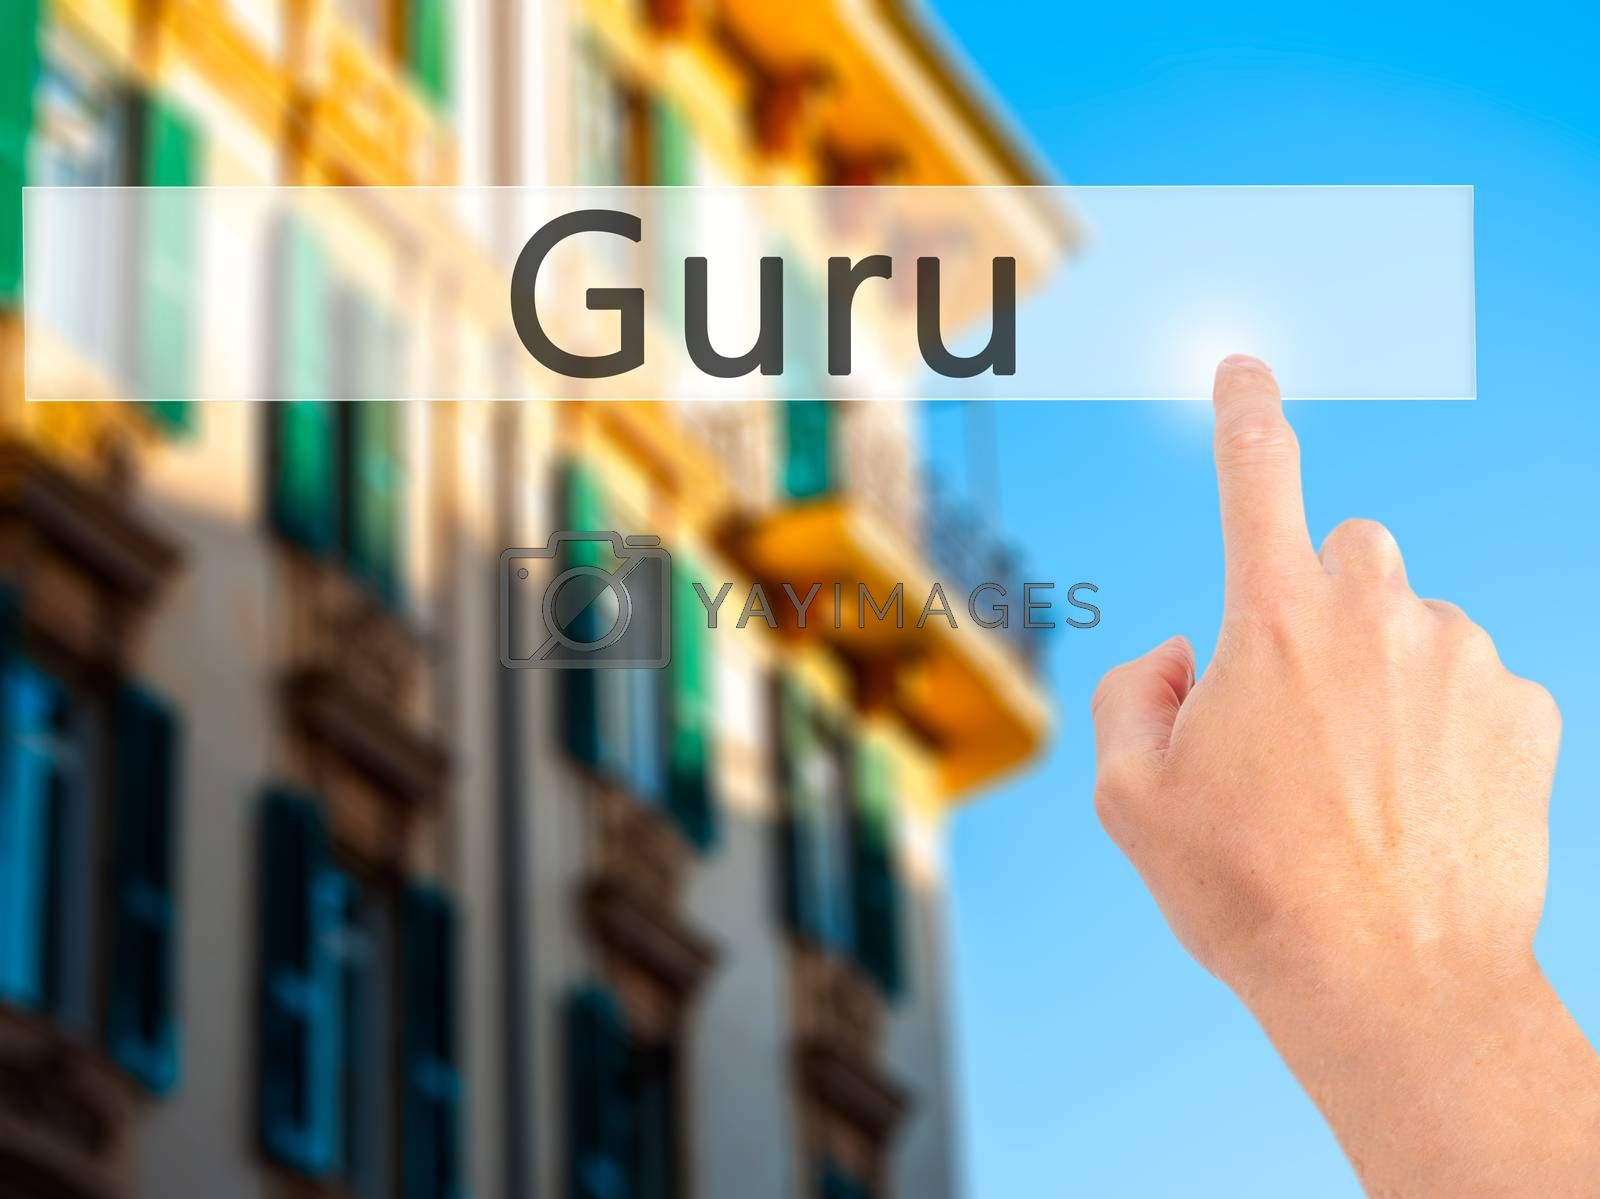 Guru - Hand pressing a button on blurred background concept on v by jackald